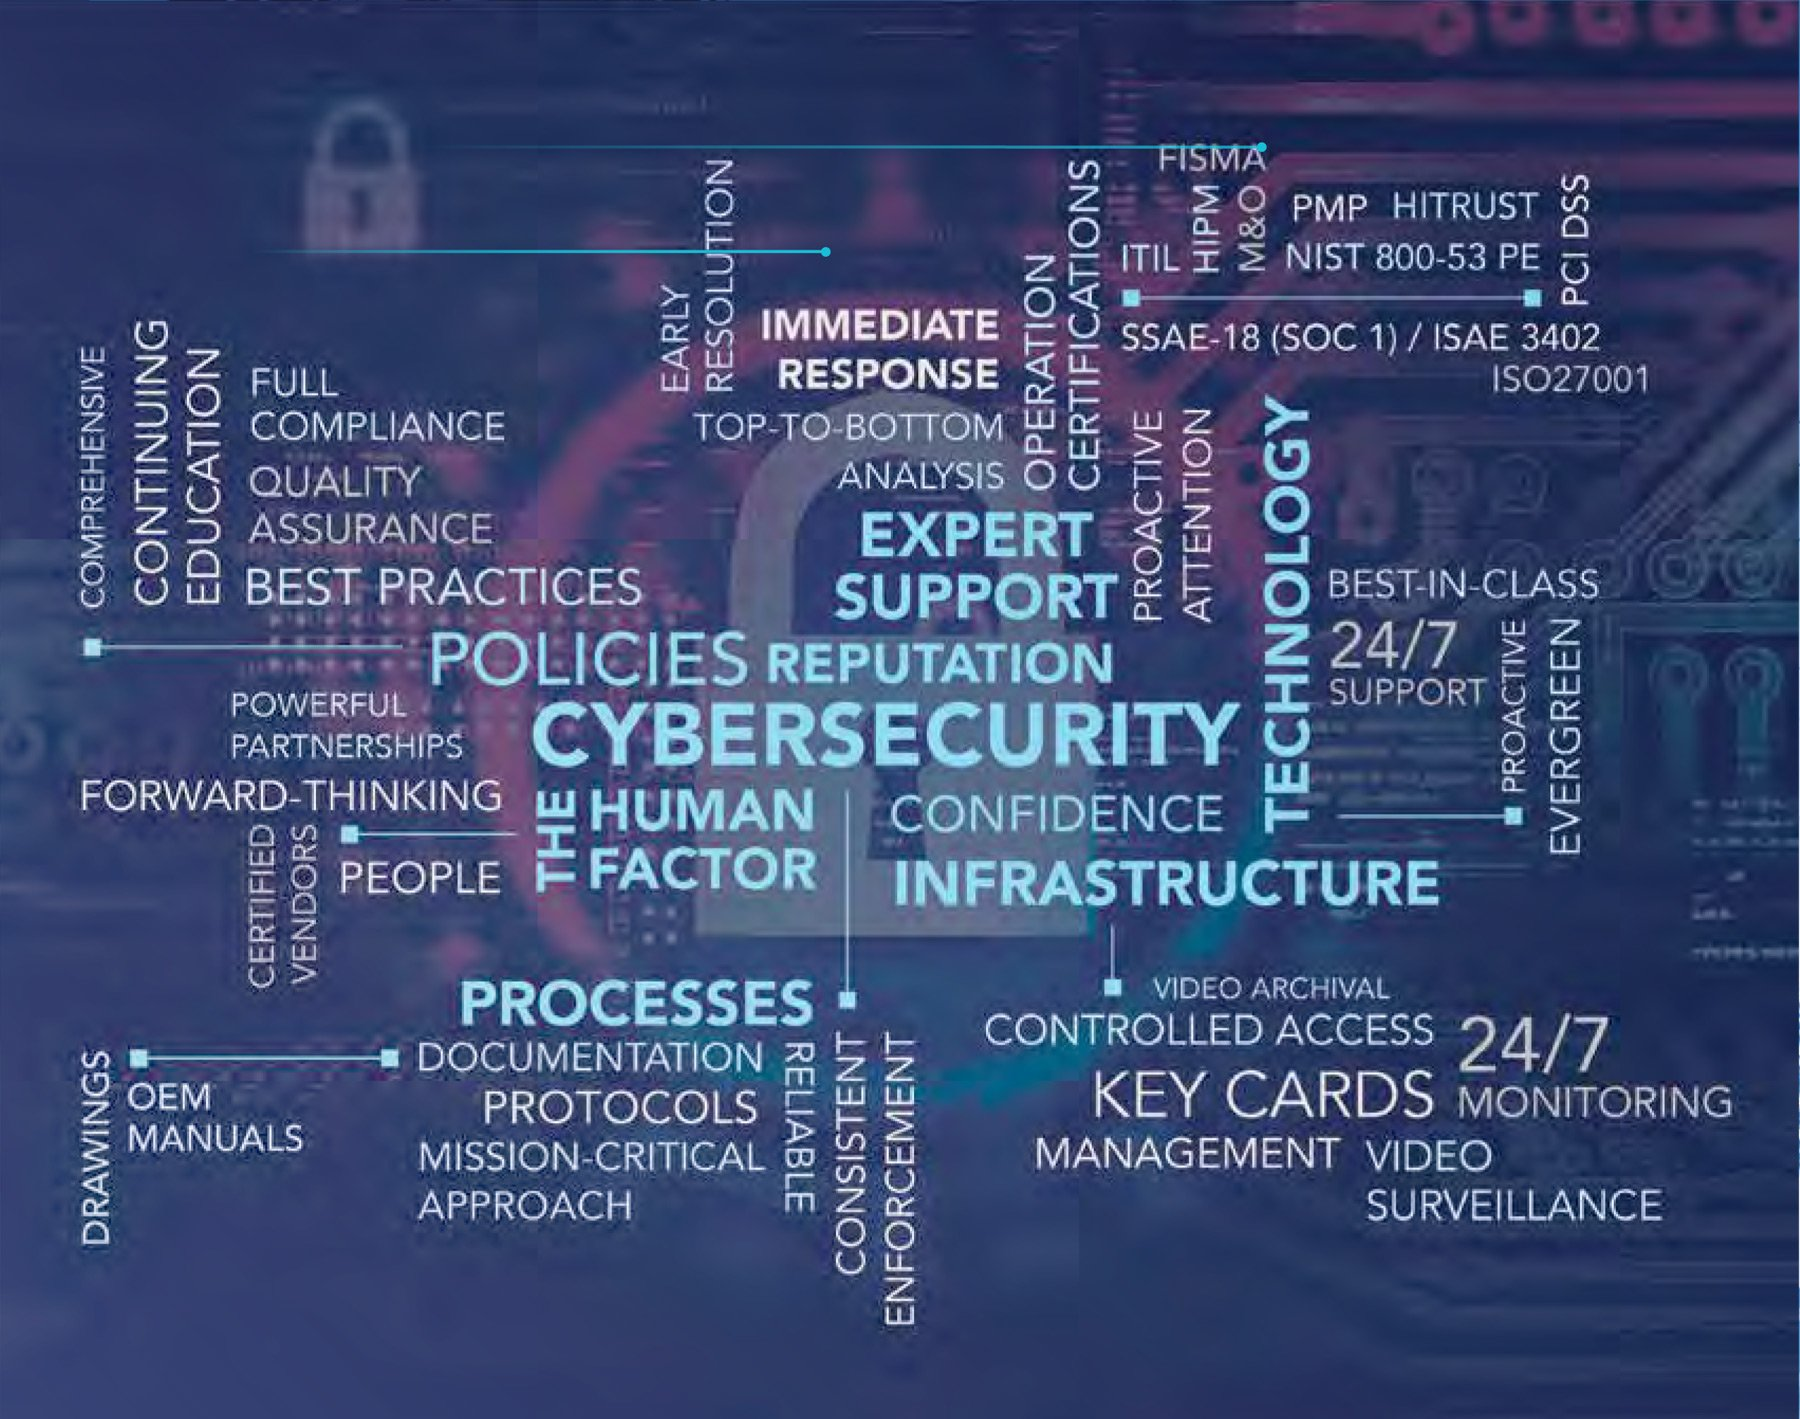 Executive Brief: Cybersecurity, It's More than Just Technology